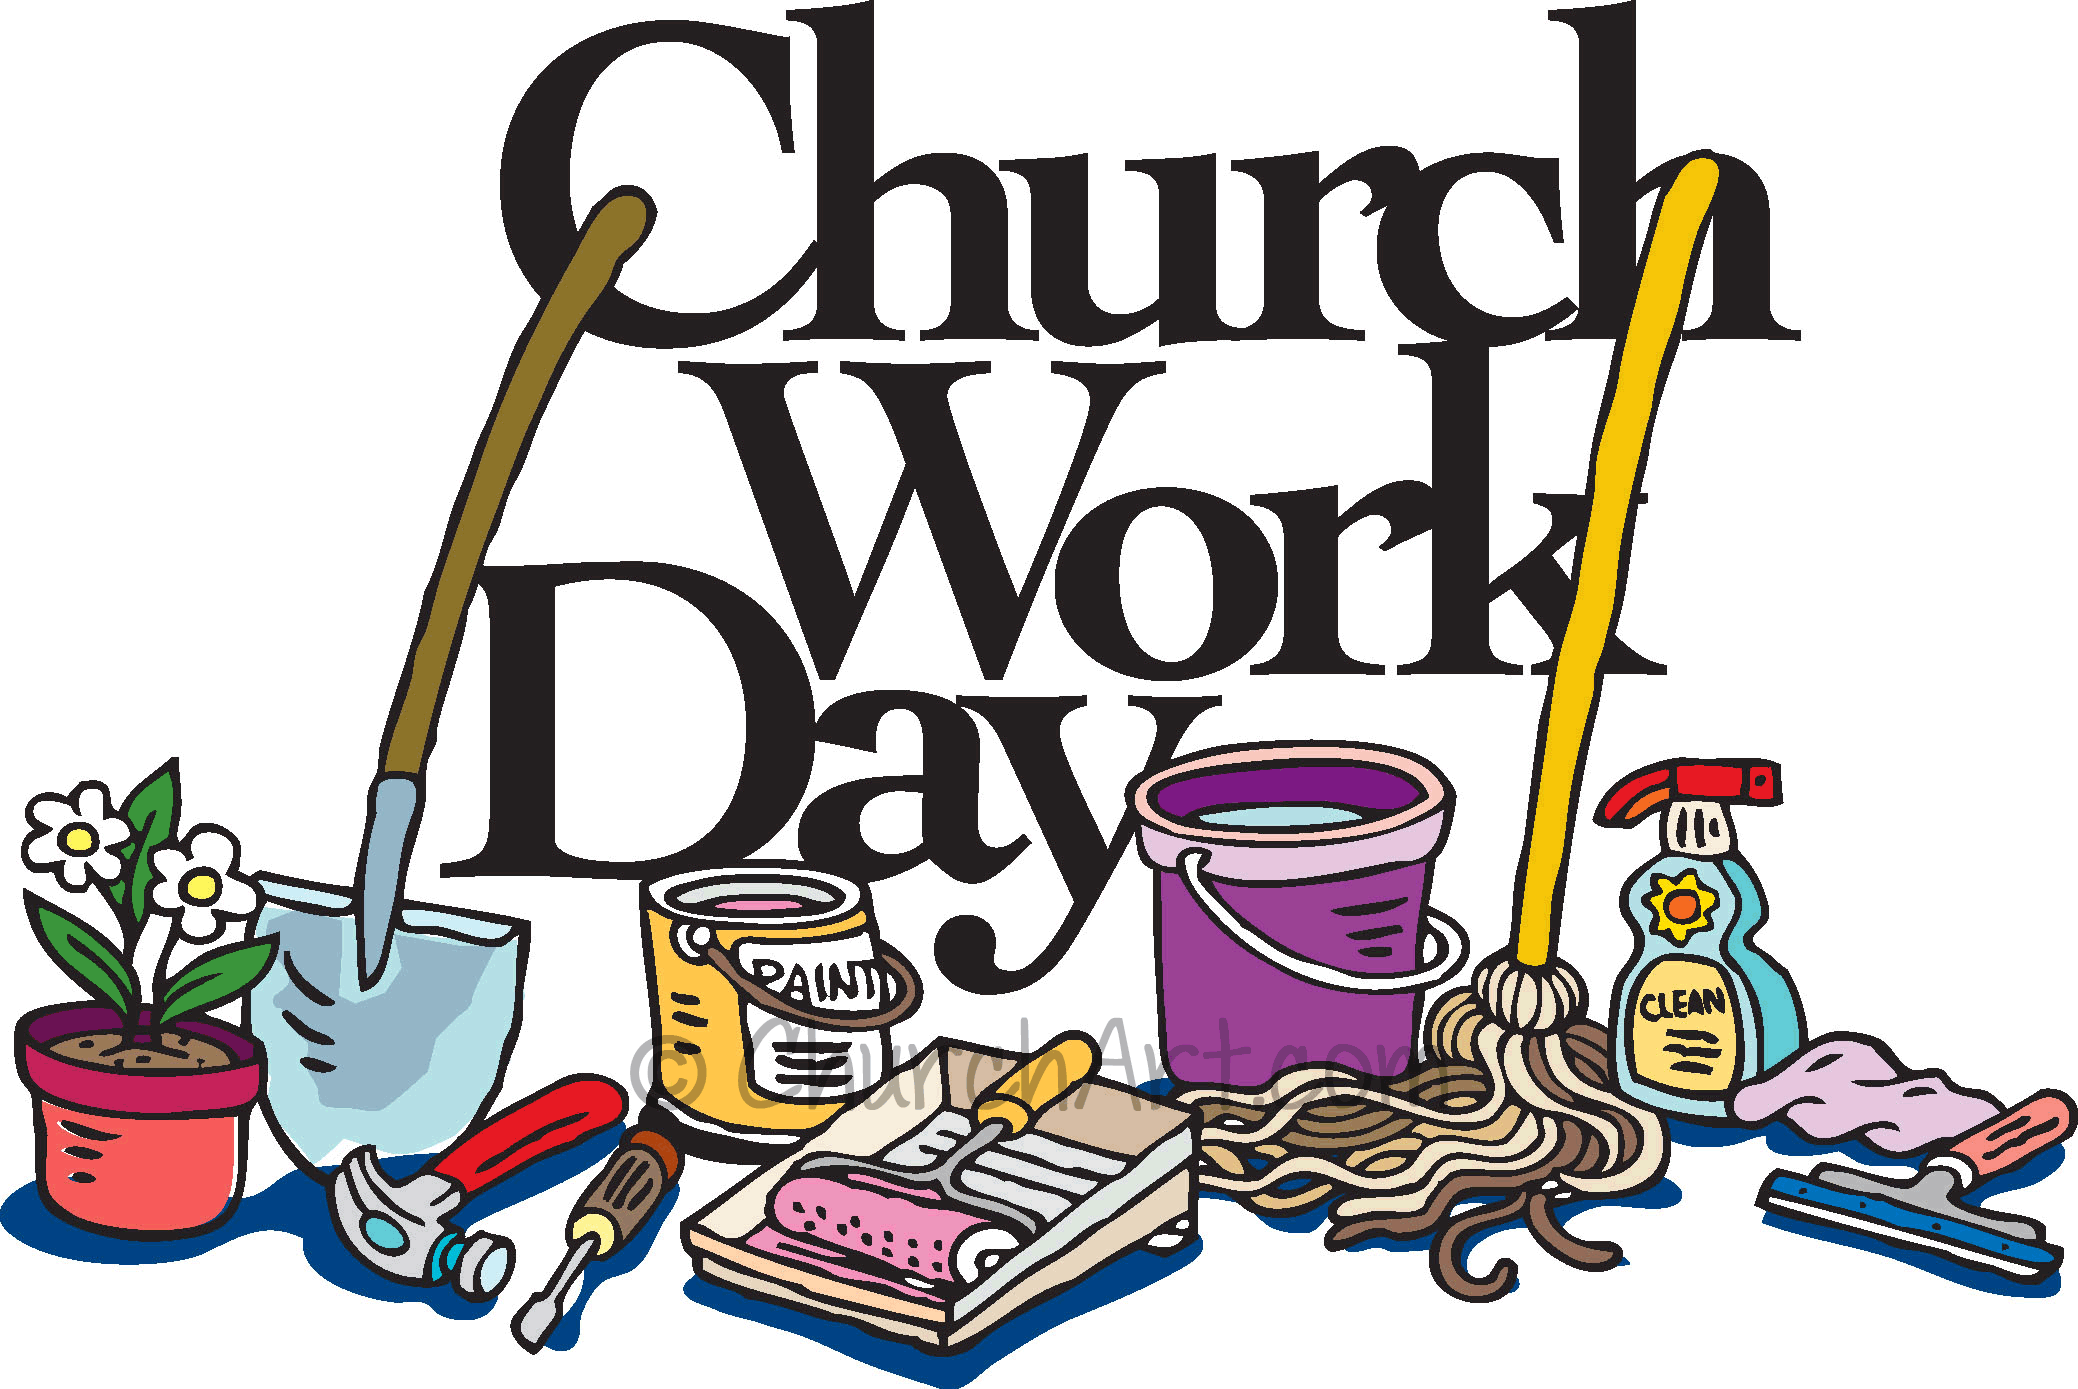 Clip-art image for church work day with mops, shovels, buckets, painting supplies and cleaning supplies